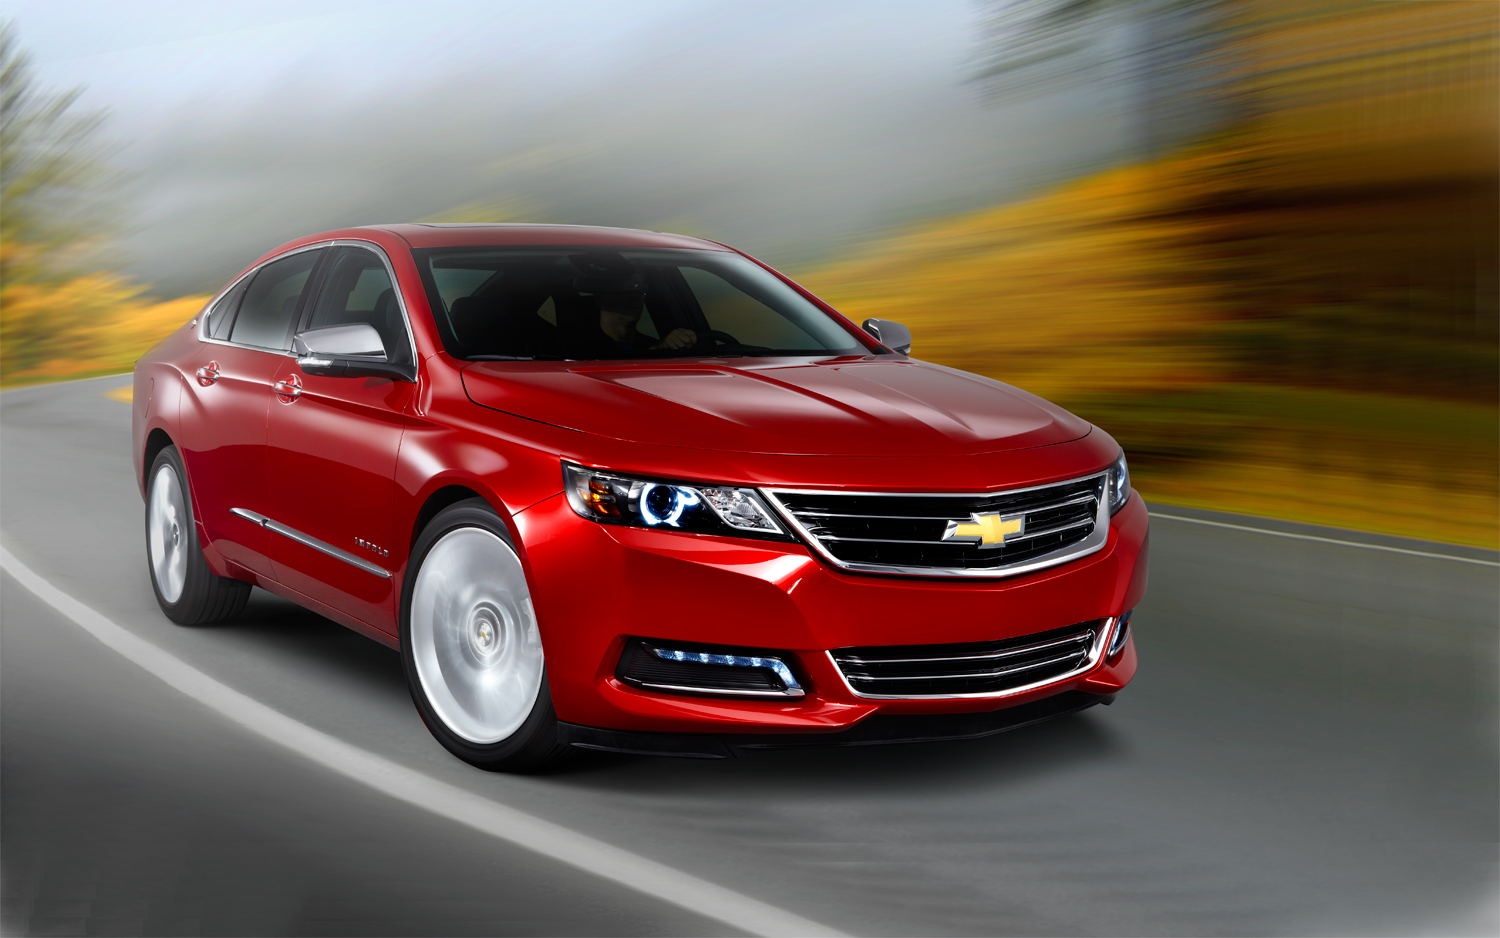 Facelift Cars - 2014 Chevrolet Impala front-three-quarter-in-motion